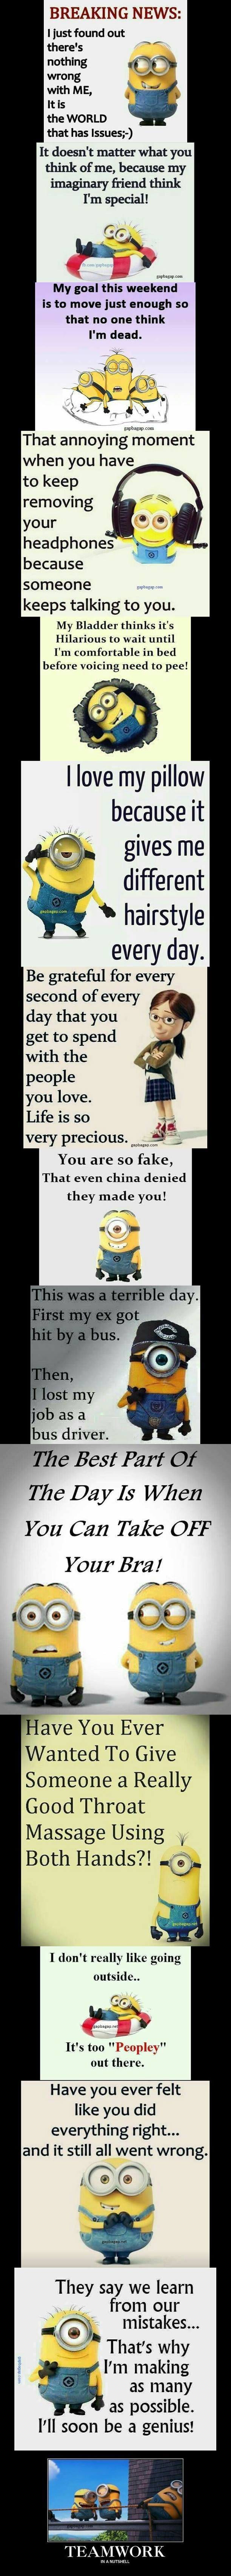 Top 15 Funniest Memes By The Minions